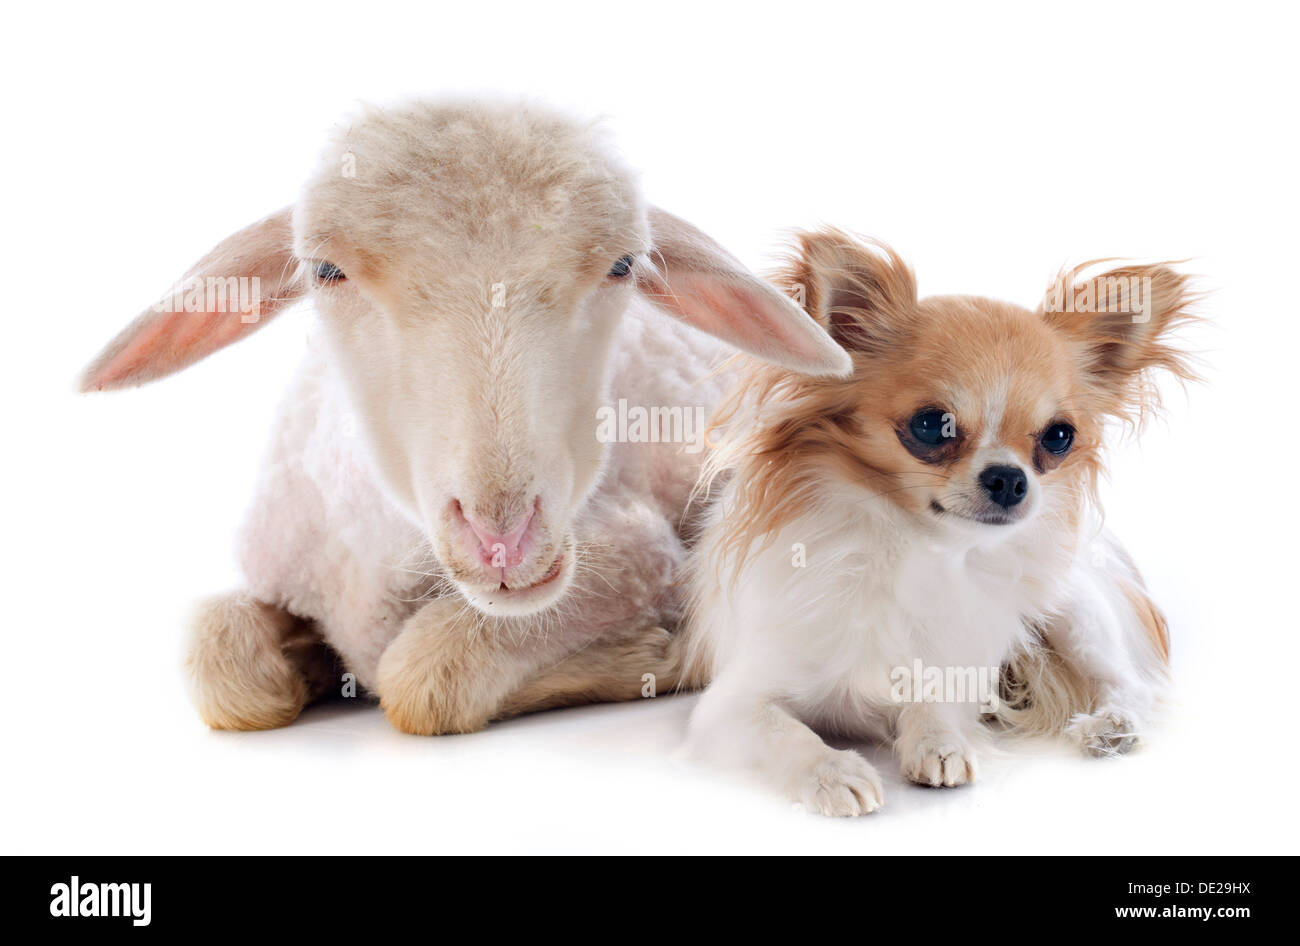 young lamb and chihuahua in front of white background - Stock Image